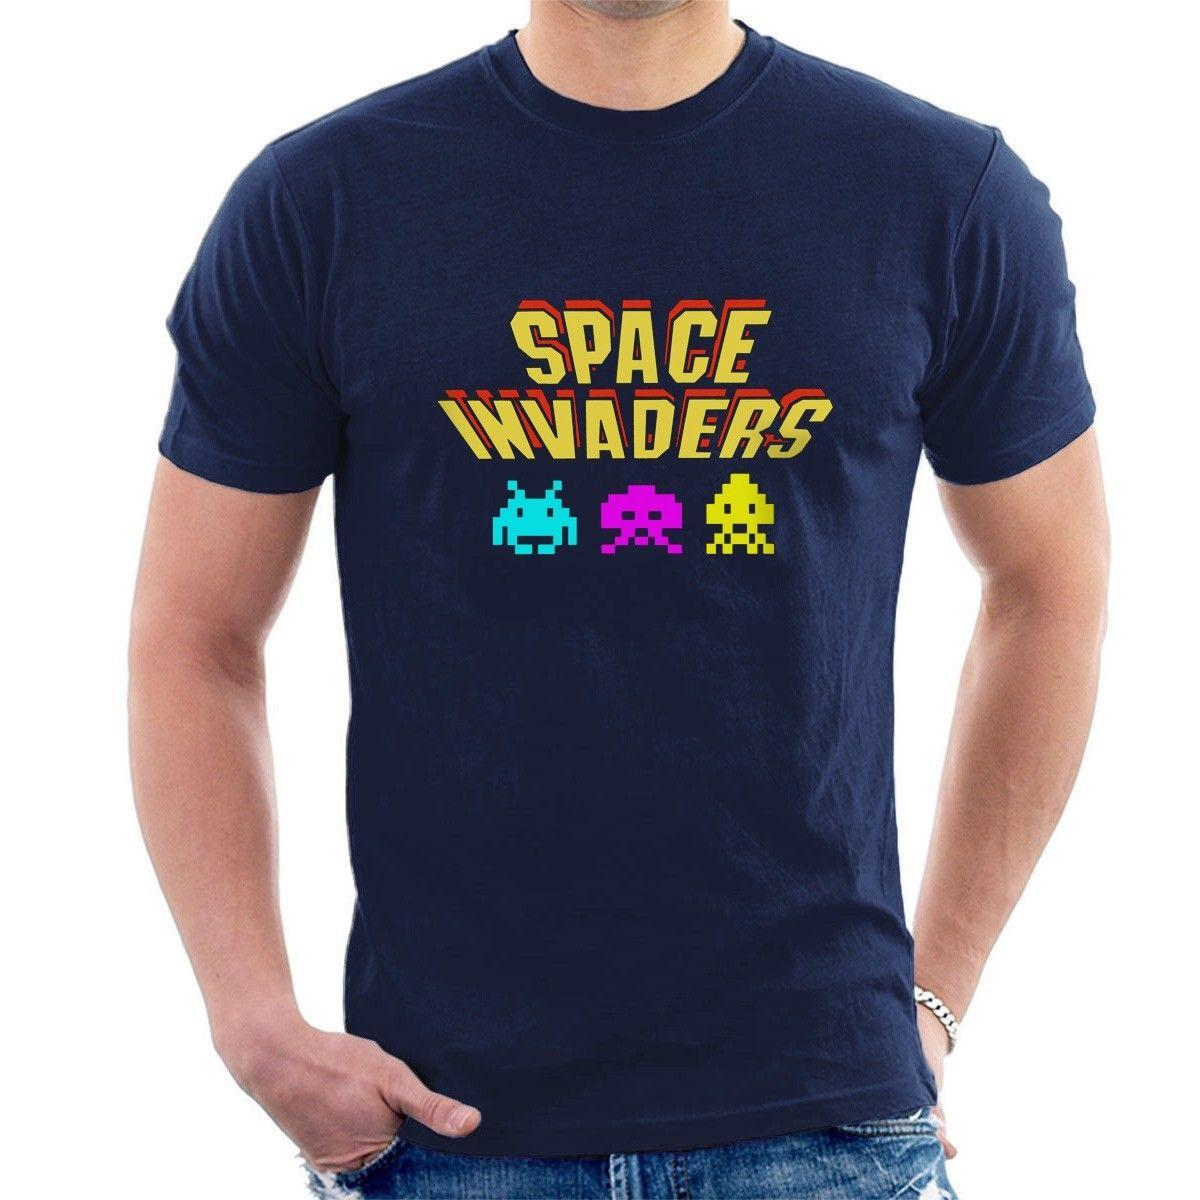 Space Invaders T Shirt Retro 80s Inspired Gaming Kids Adults Sizes